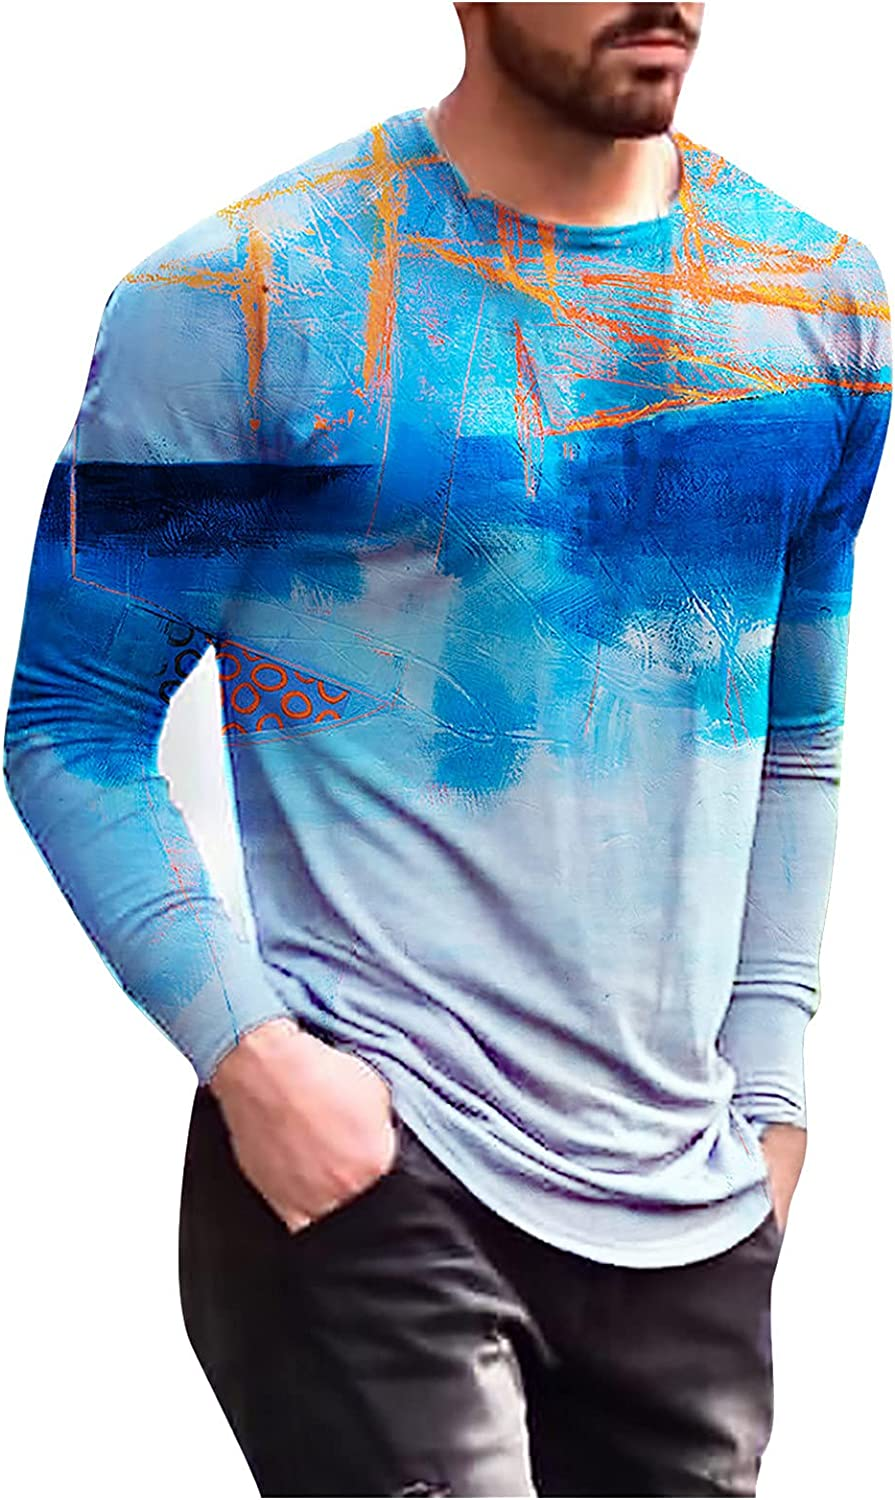 Aayomet Men's T Shirts Vintage Graphic Long Sleeve Slim Fit T-Shirt Casual Beach Sport Athletic Workout Tee Shirts Tops